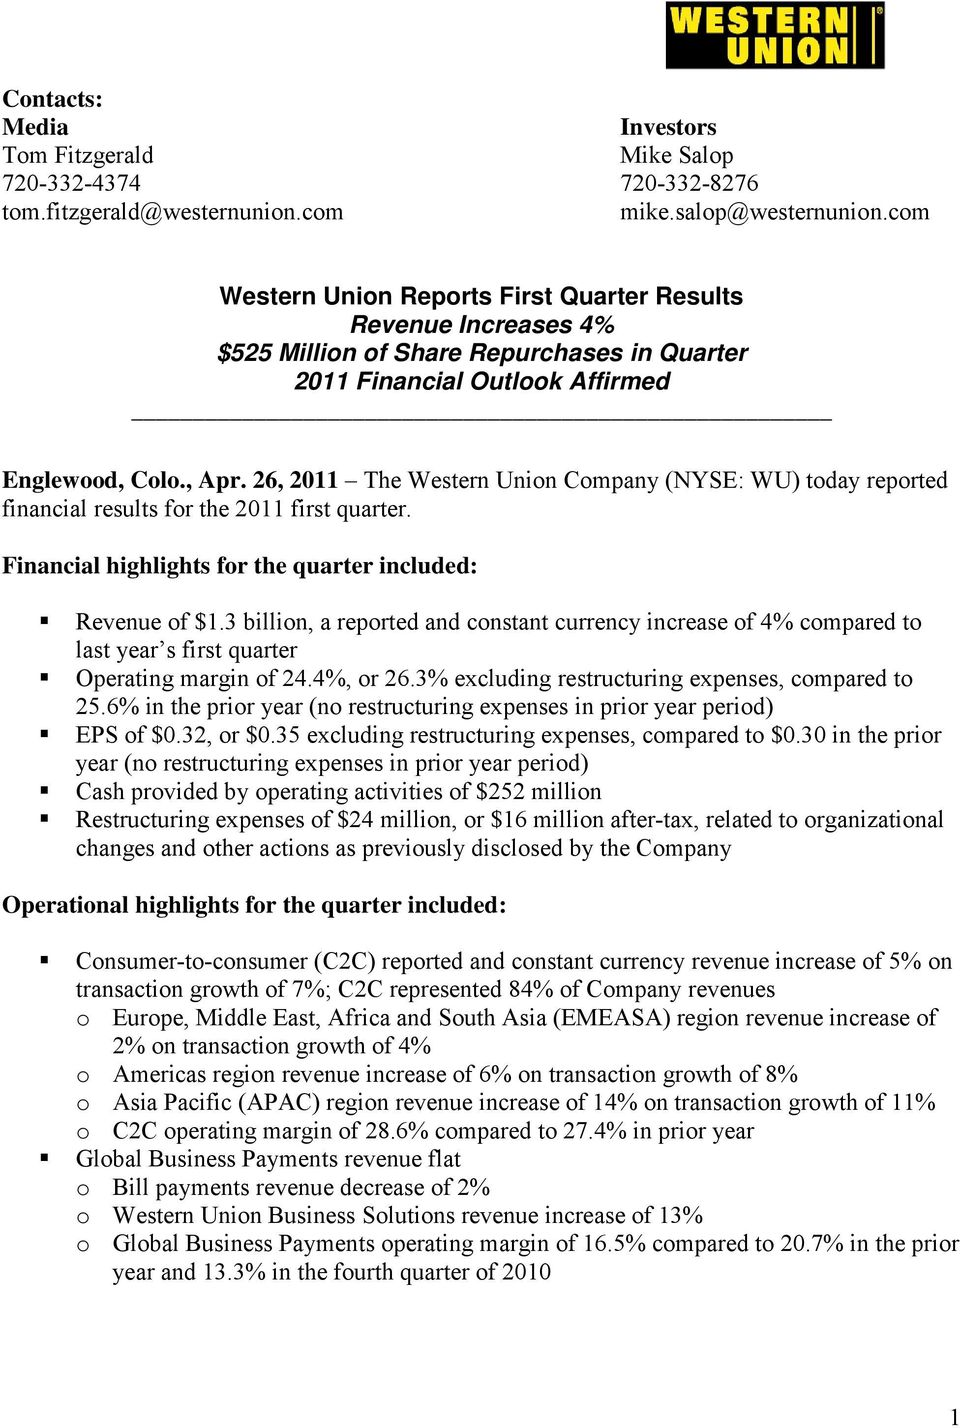 26, 2011 The Western Union Company (NYSE: WU) today reported financial results for the 2011 first quarter. Financial highlights for the quarter included: Revenue of $1.